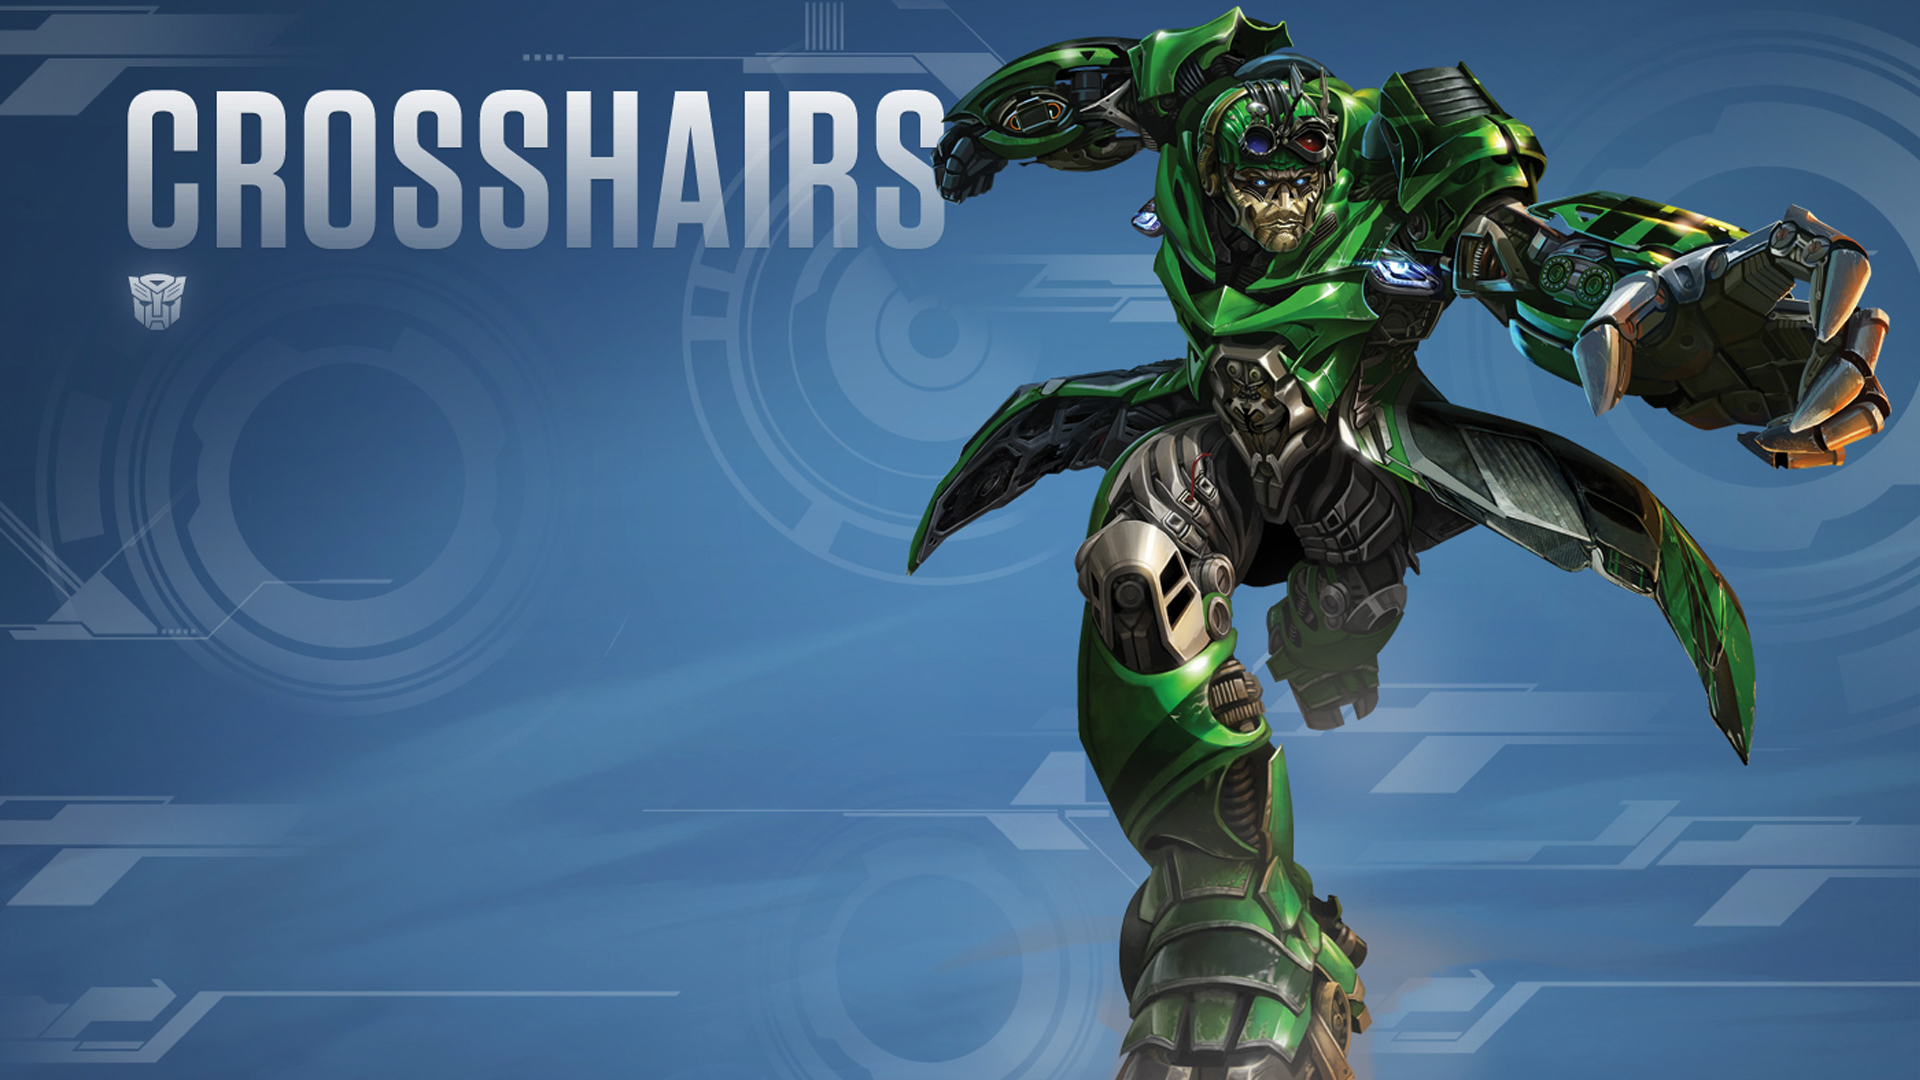 crosshairs transformers 4 hd wallpaper